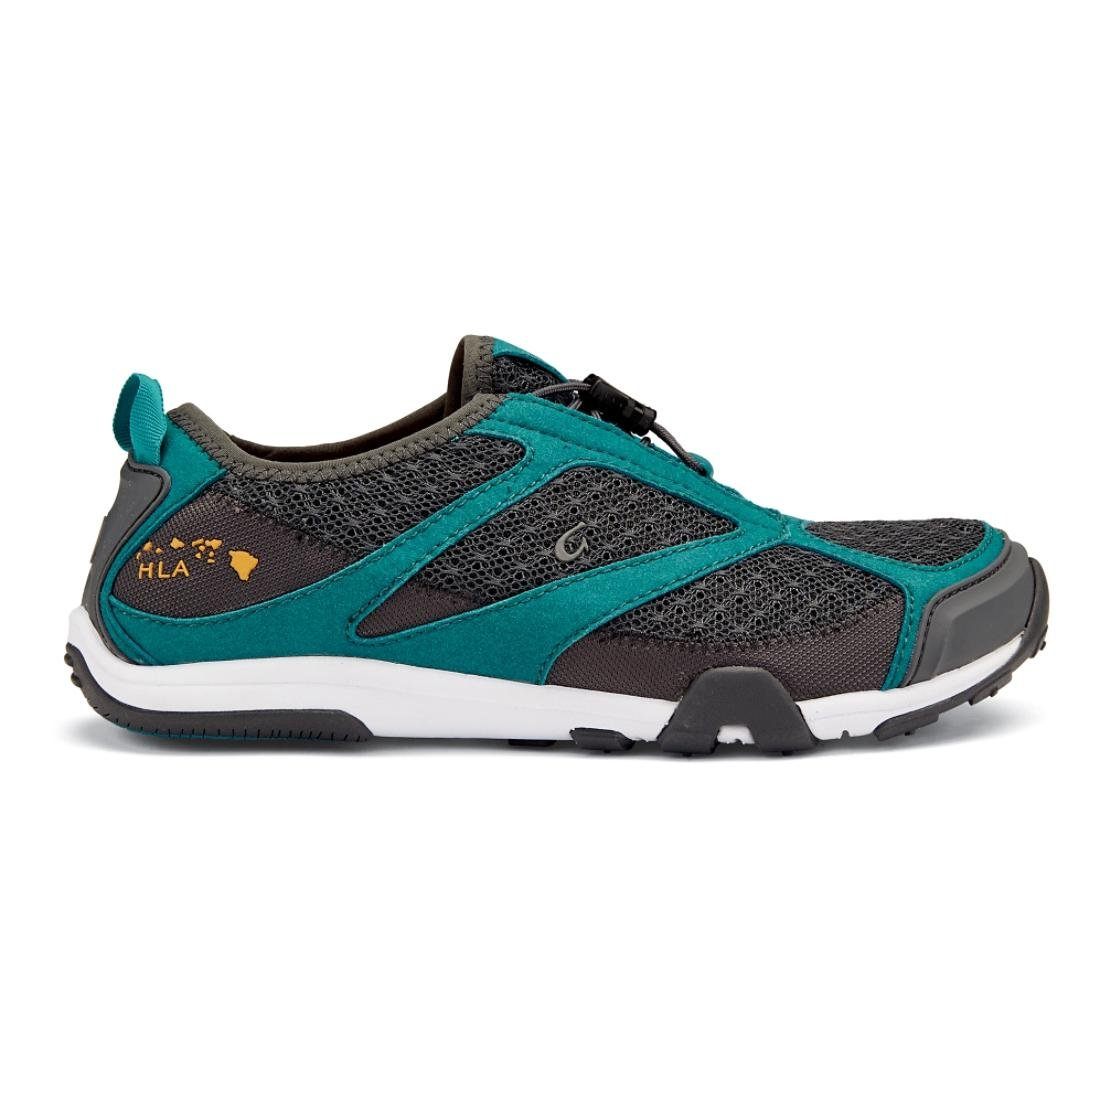 Olukai Eleuトレーナー – Women 's B010EAVFFO 6.5 B(M) US|Dark Shadow / Teal Dark Shadow / Teal 6.5 B(M) US